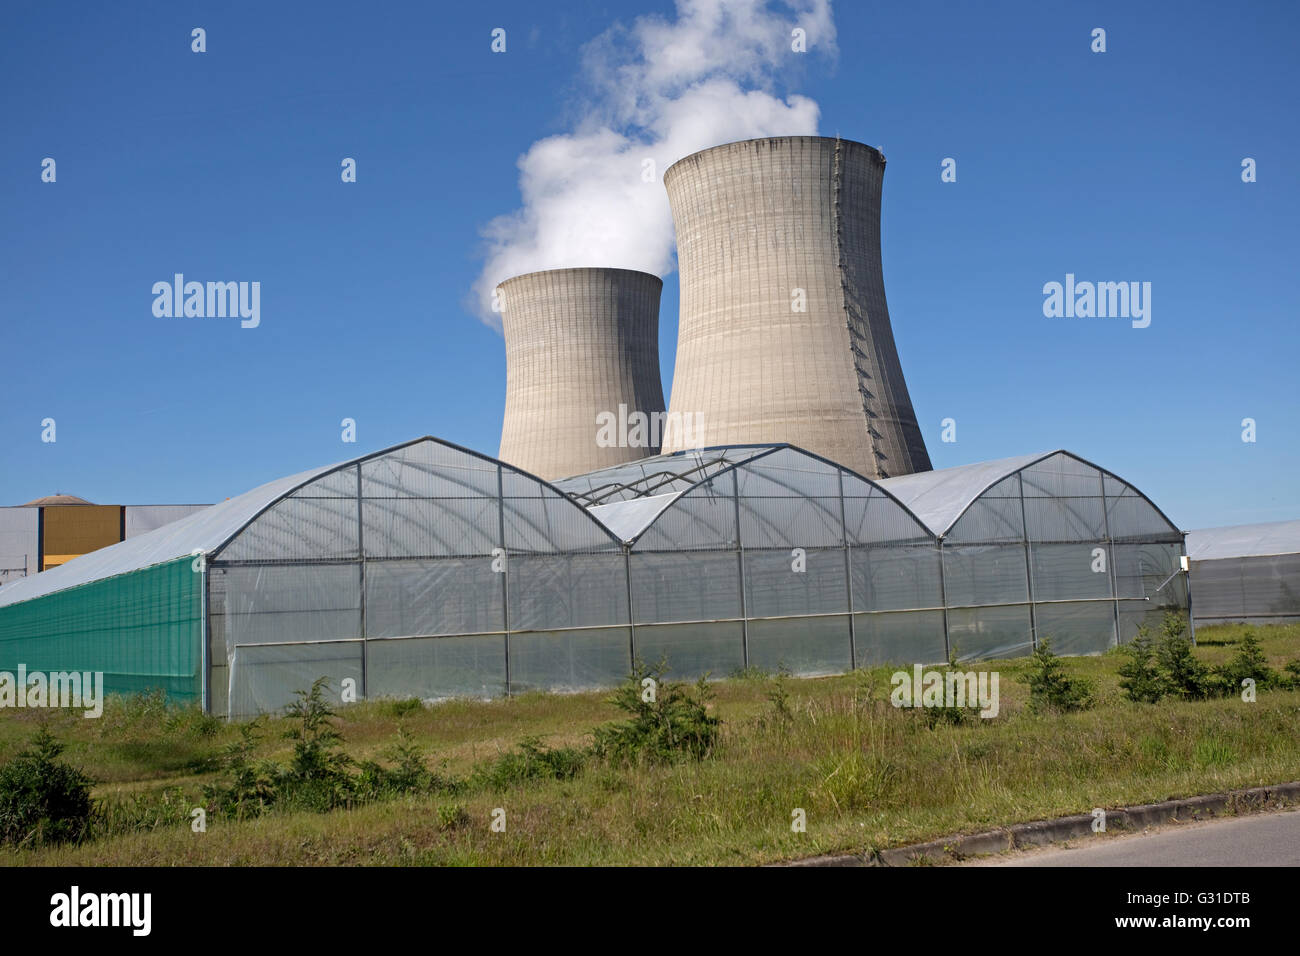 Greenhouse growing plants near cooling towers EDF nuclear power plant Dampierre-en-Burly France - Stock Image